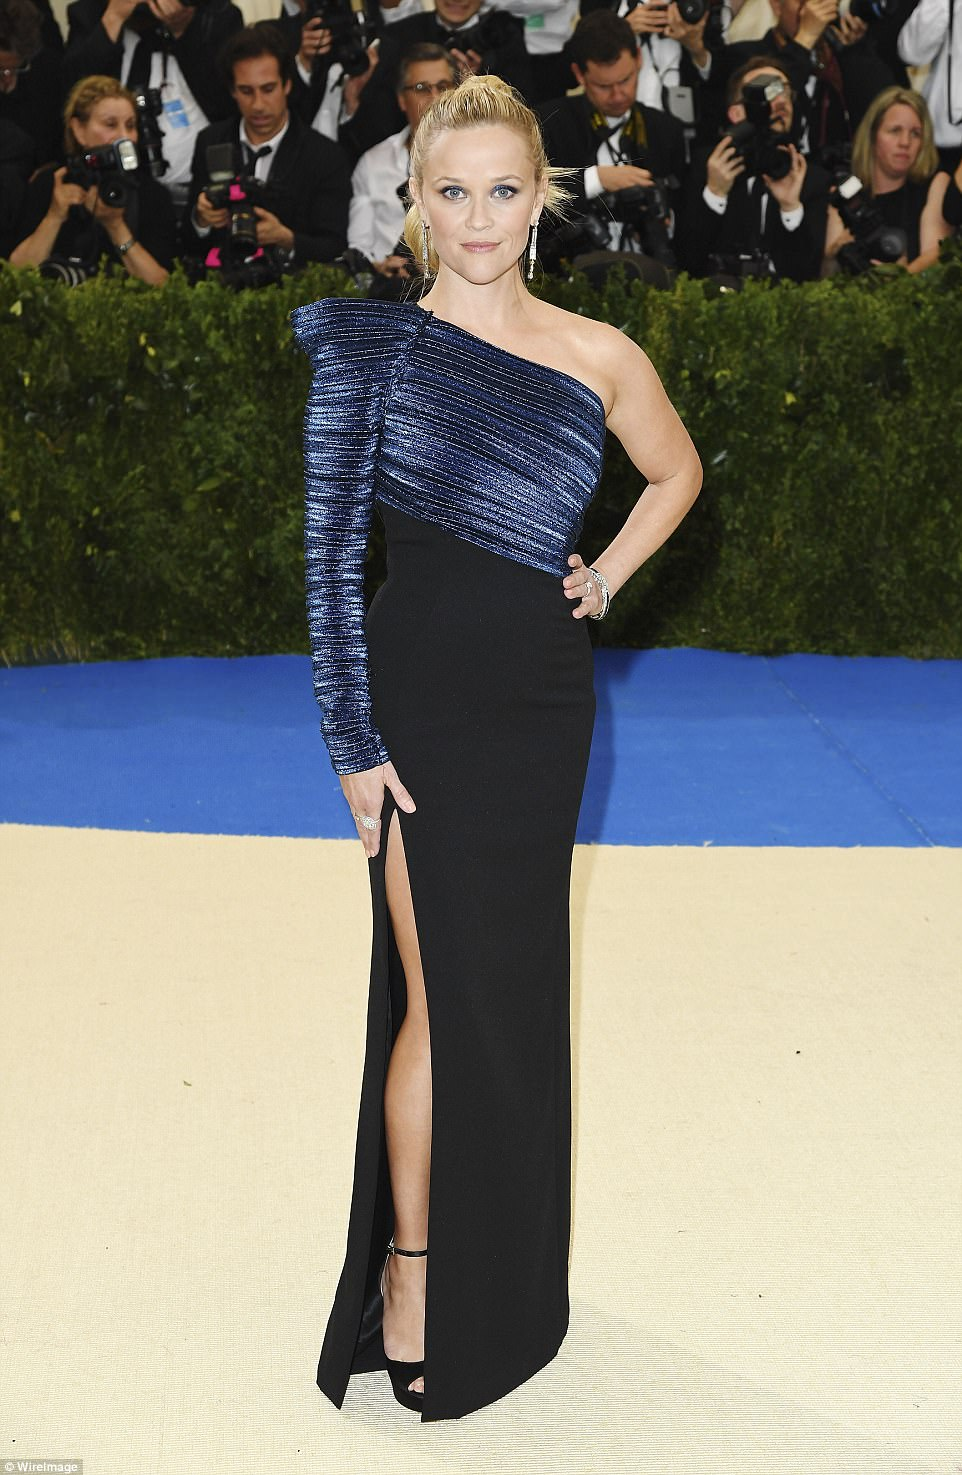 Met Gala 2017  Reese Witherspoon wears navy and black gown   Daily     Classically stylish  Reese Witherspoon was classically stylish as she  arrived for Monday night s Met Gala